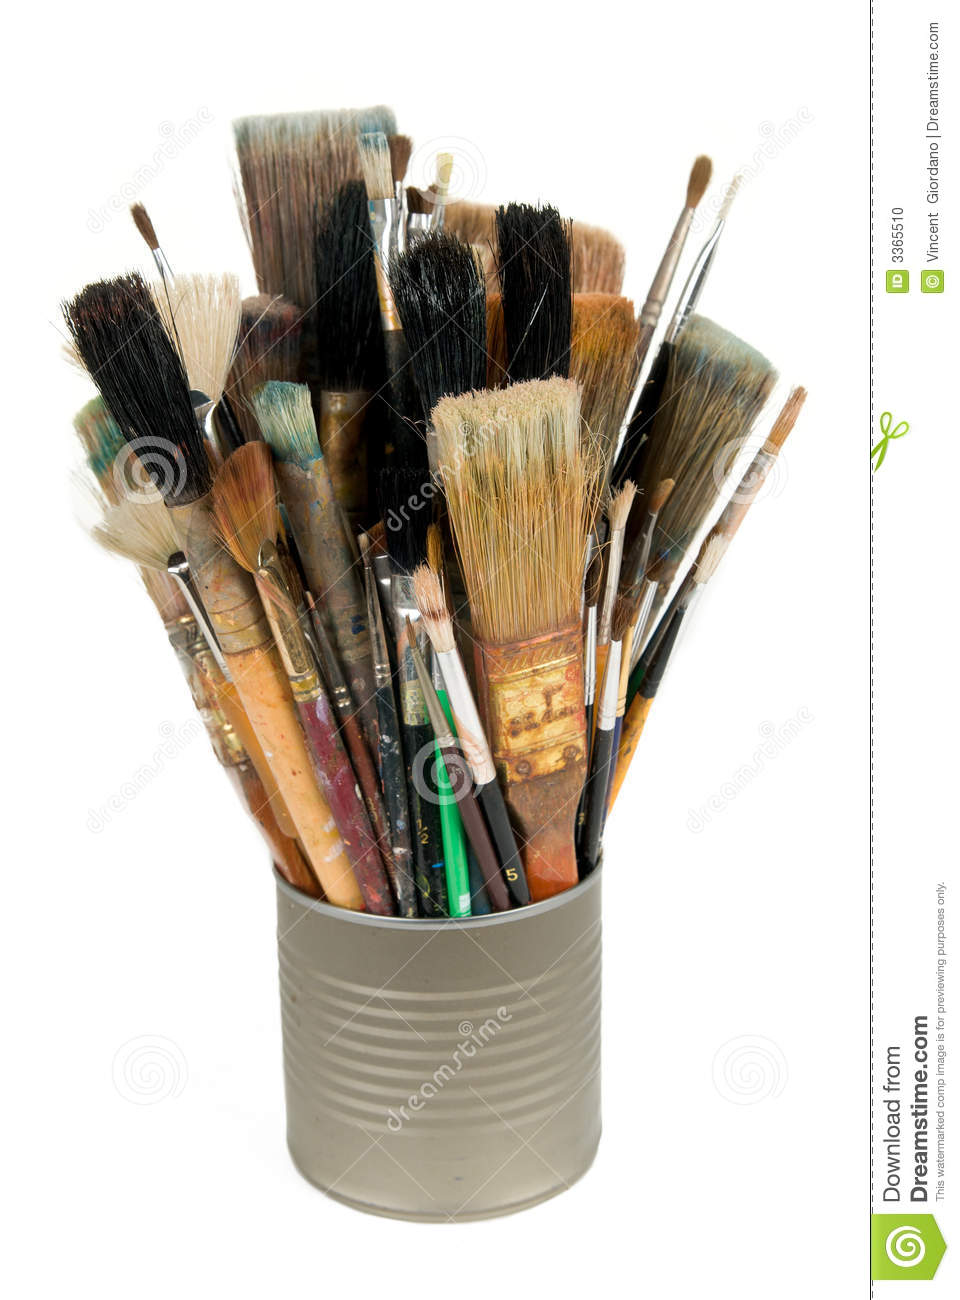 paint brushes in a can stock photo image 3365510. Black Bedroom Furniture Sets. Home Design Ideas